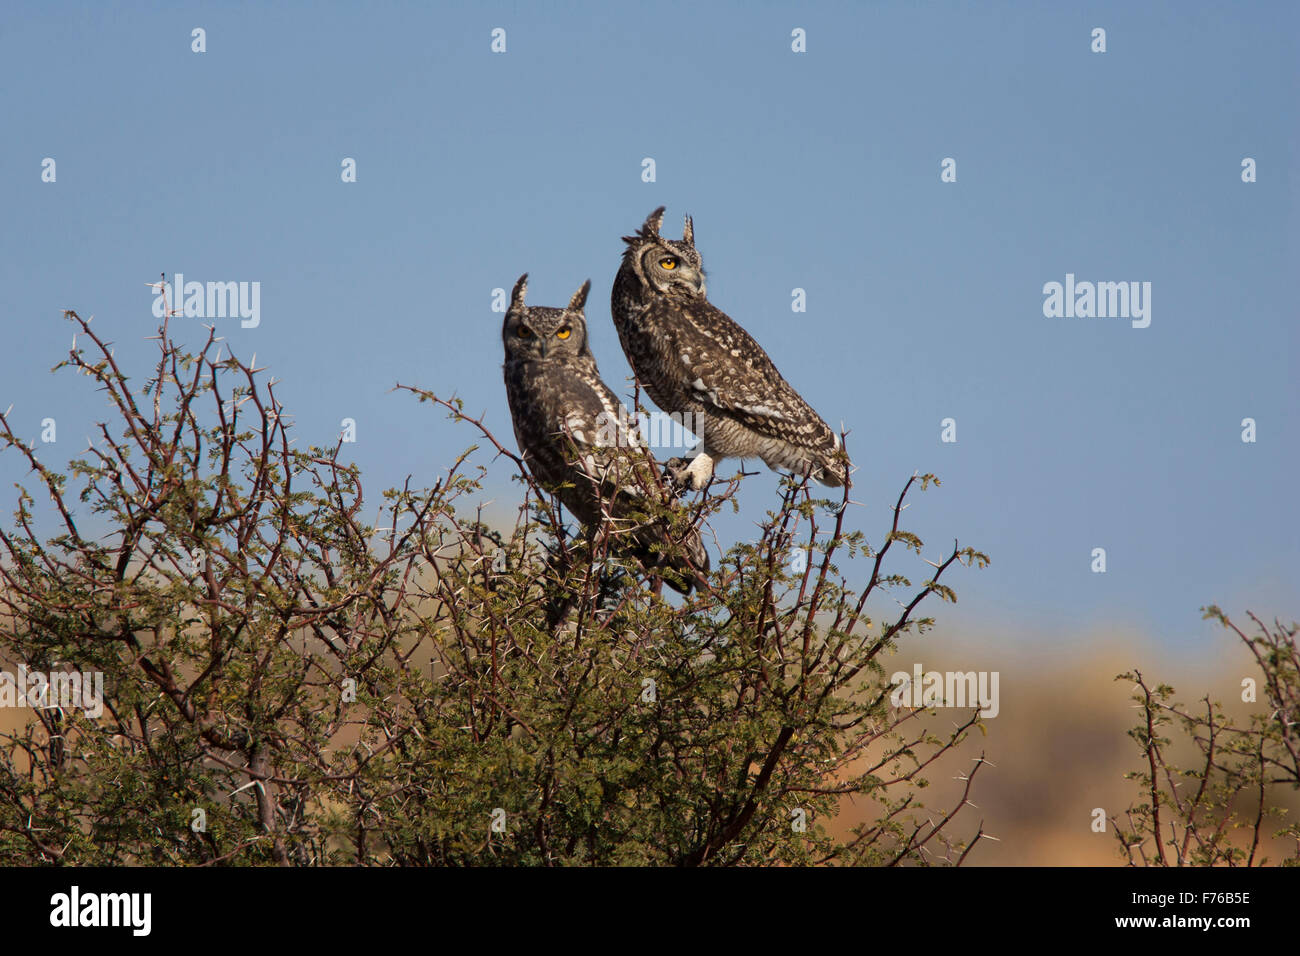 Two Spotted eagle owls perched in a tree during daylight hours in the Kgalagadi Transfrontier Park - Stock Image